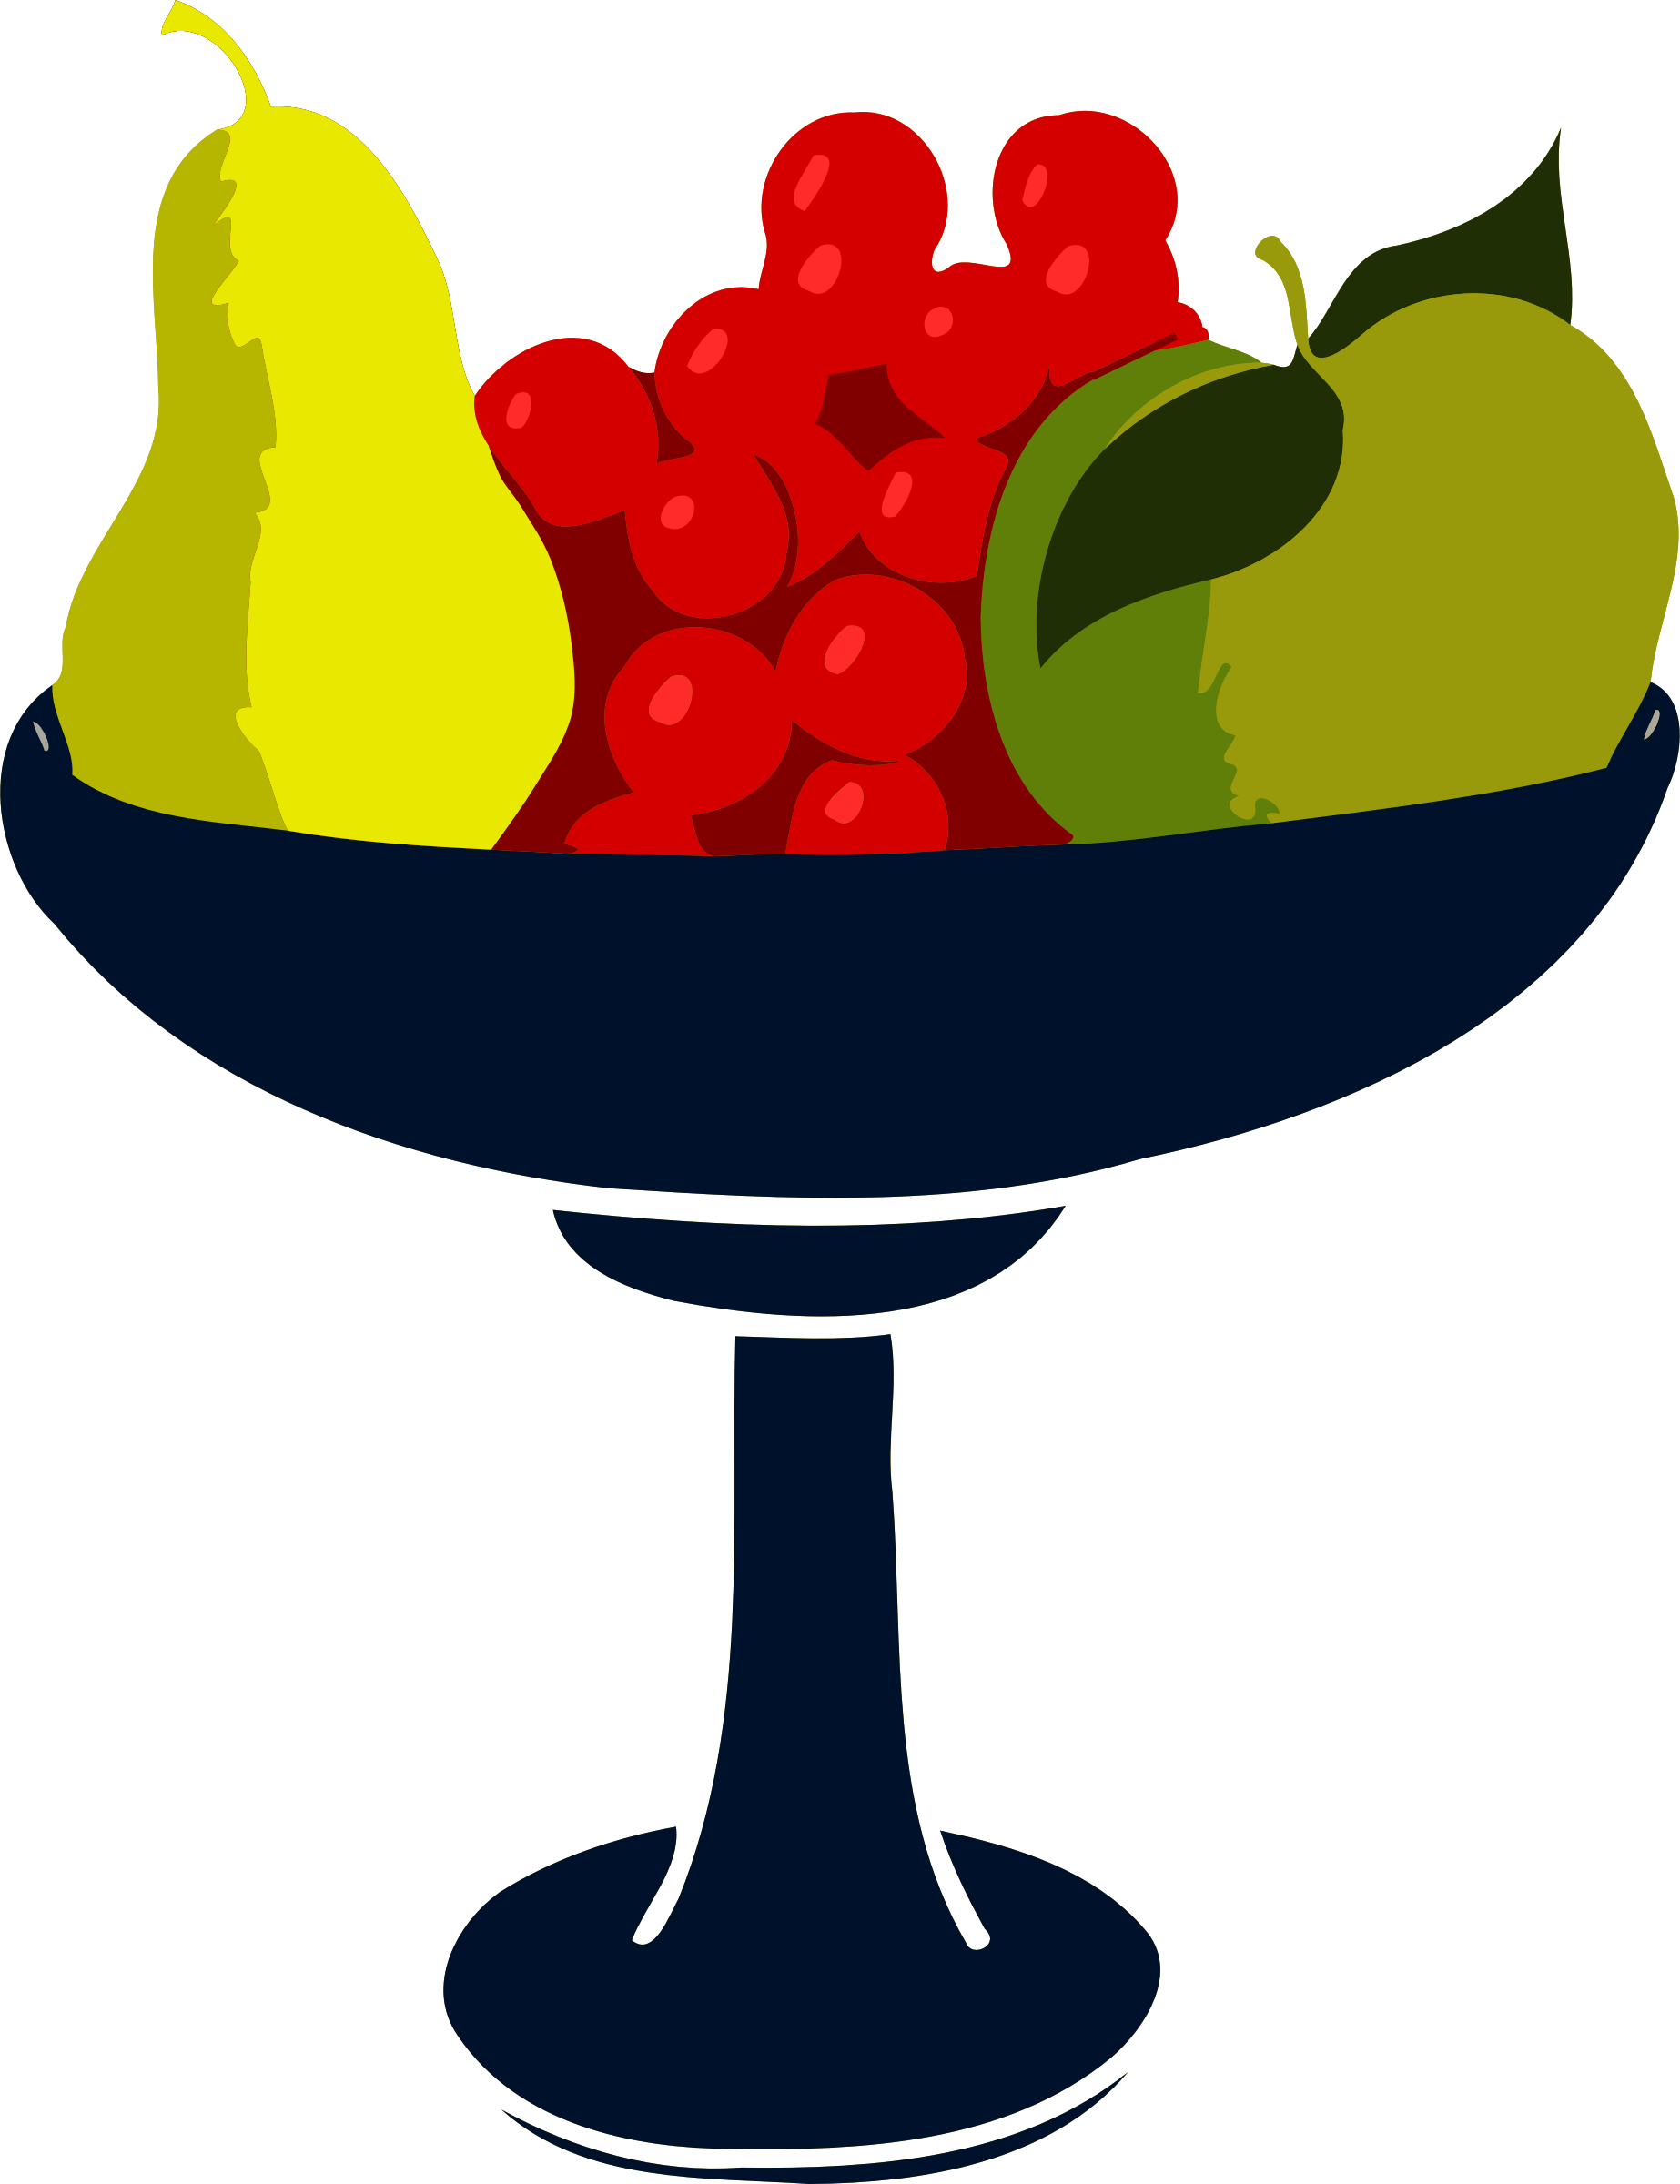 Fruit house clipart graphic transparent library fruit bowl clipart fruitbowl - Clip Art. Net graphic transparent library